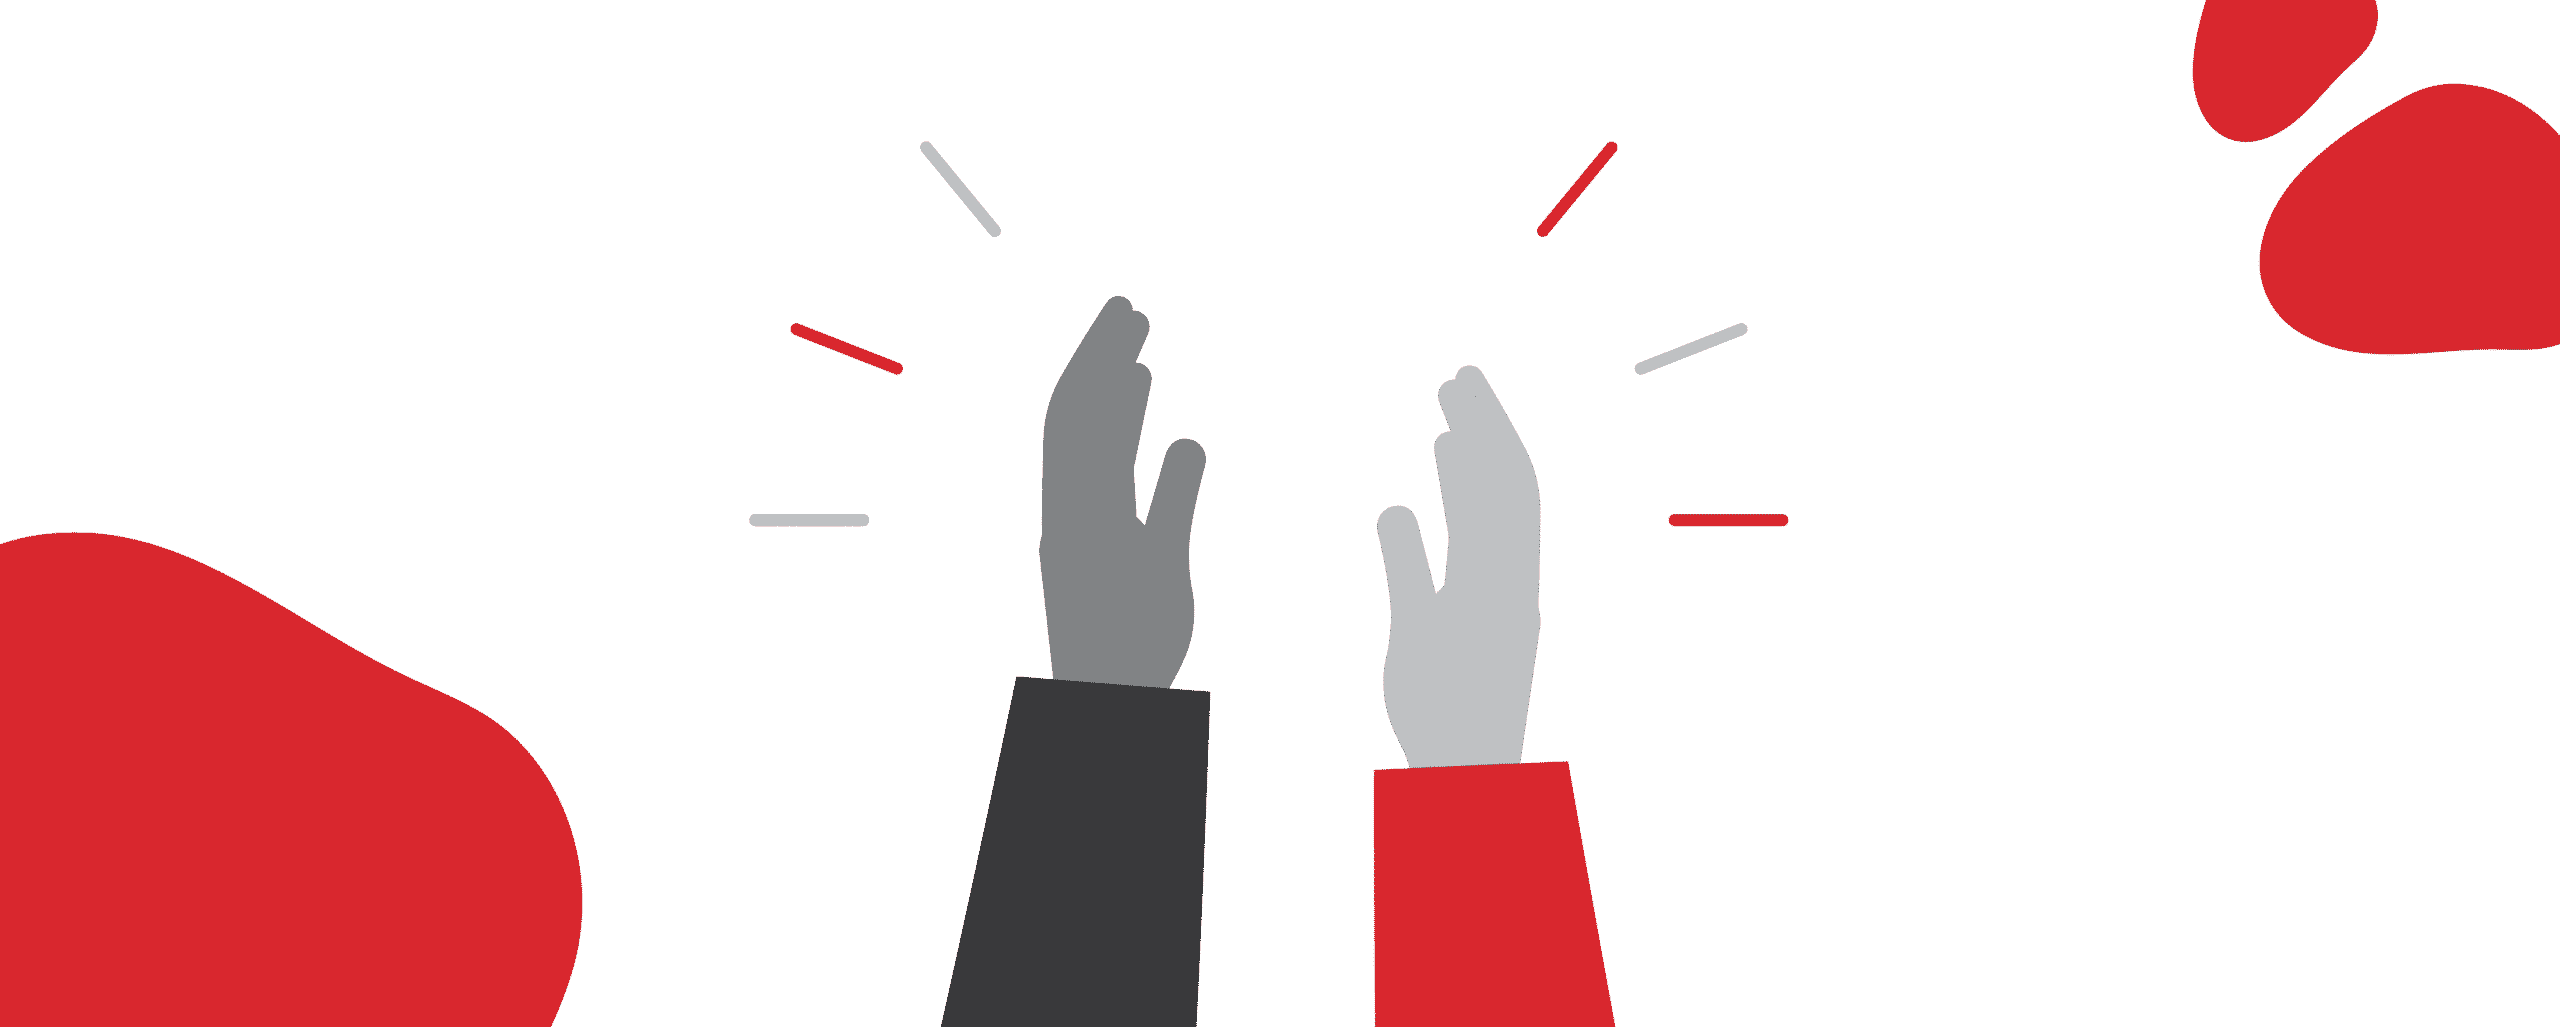 Illustration of hands clapping.